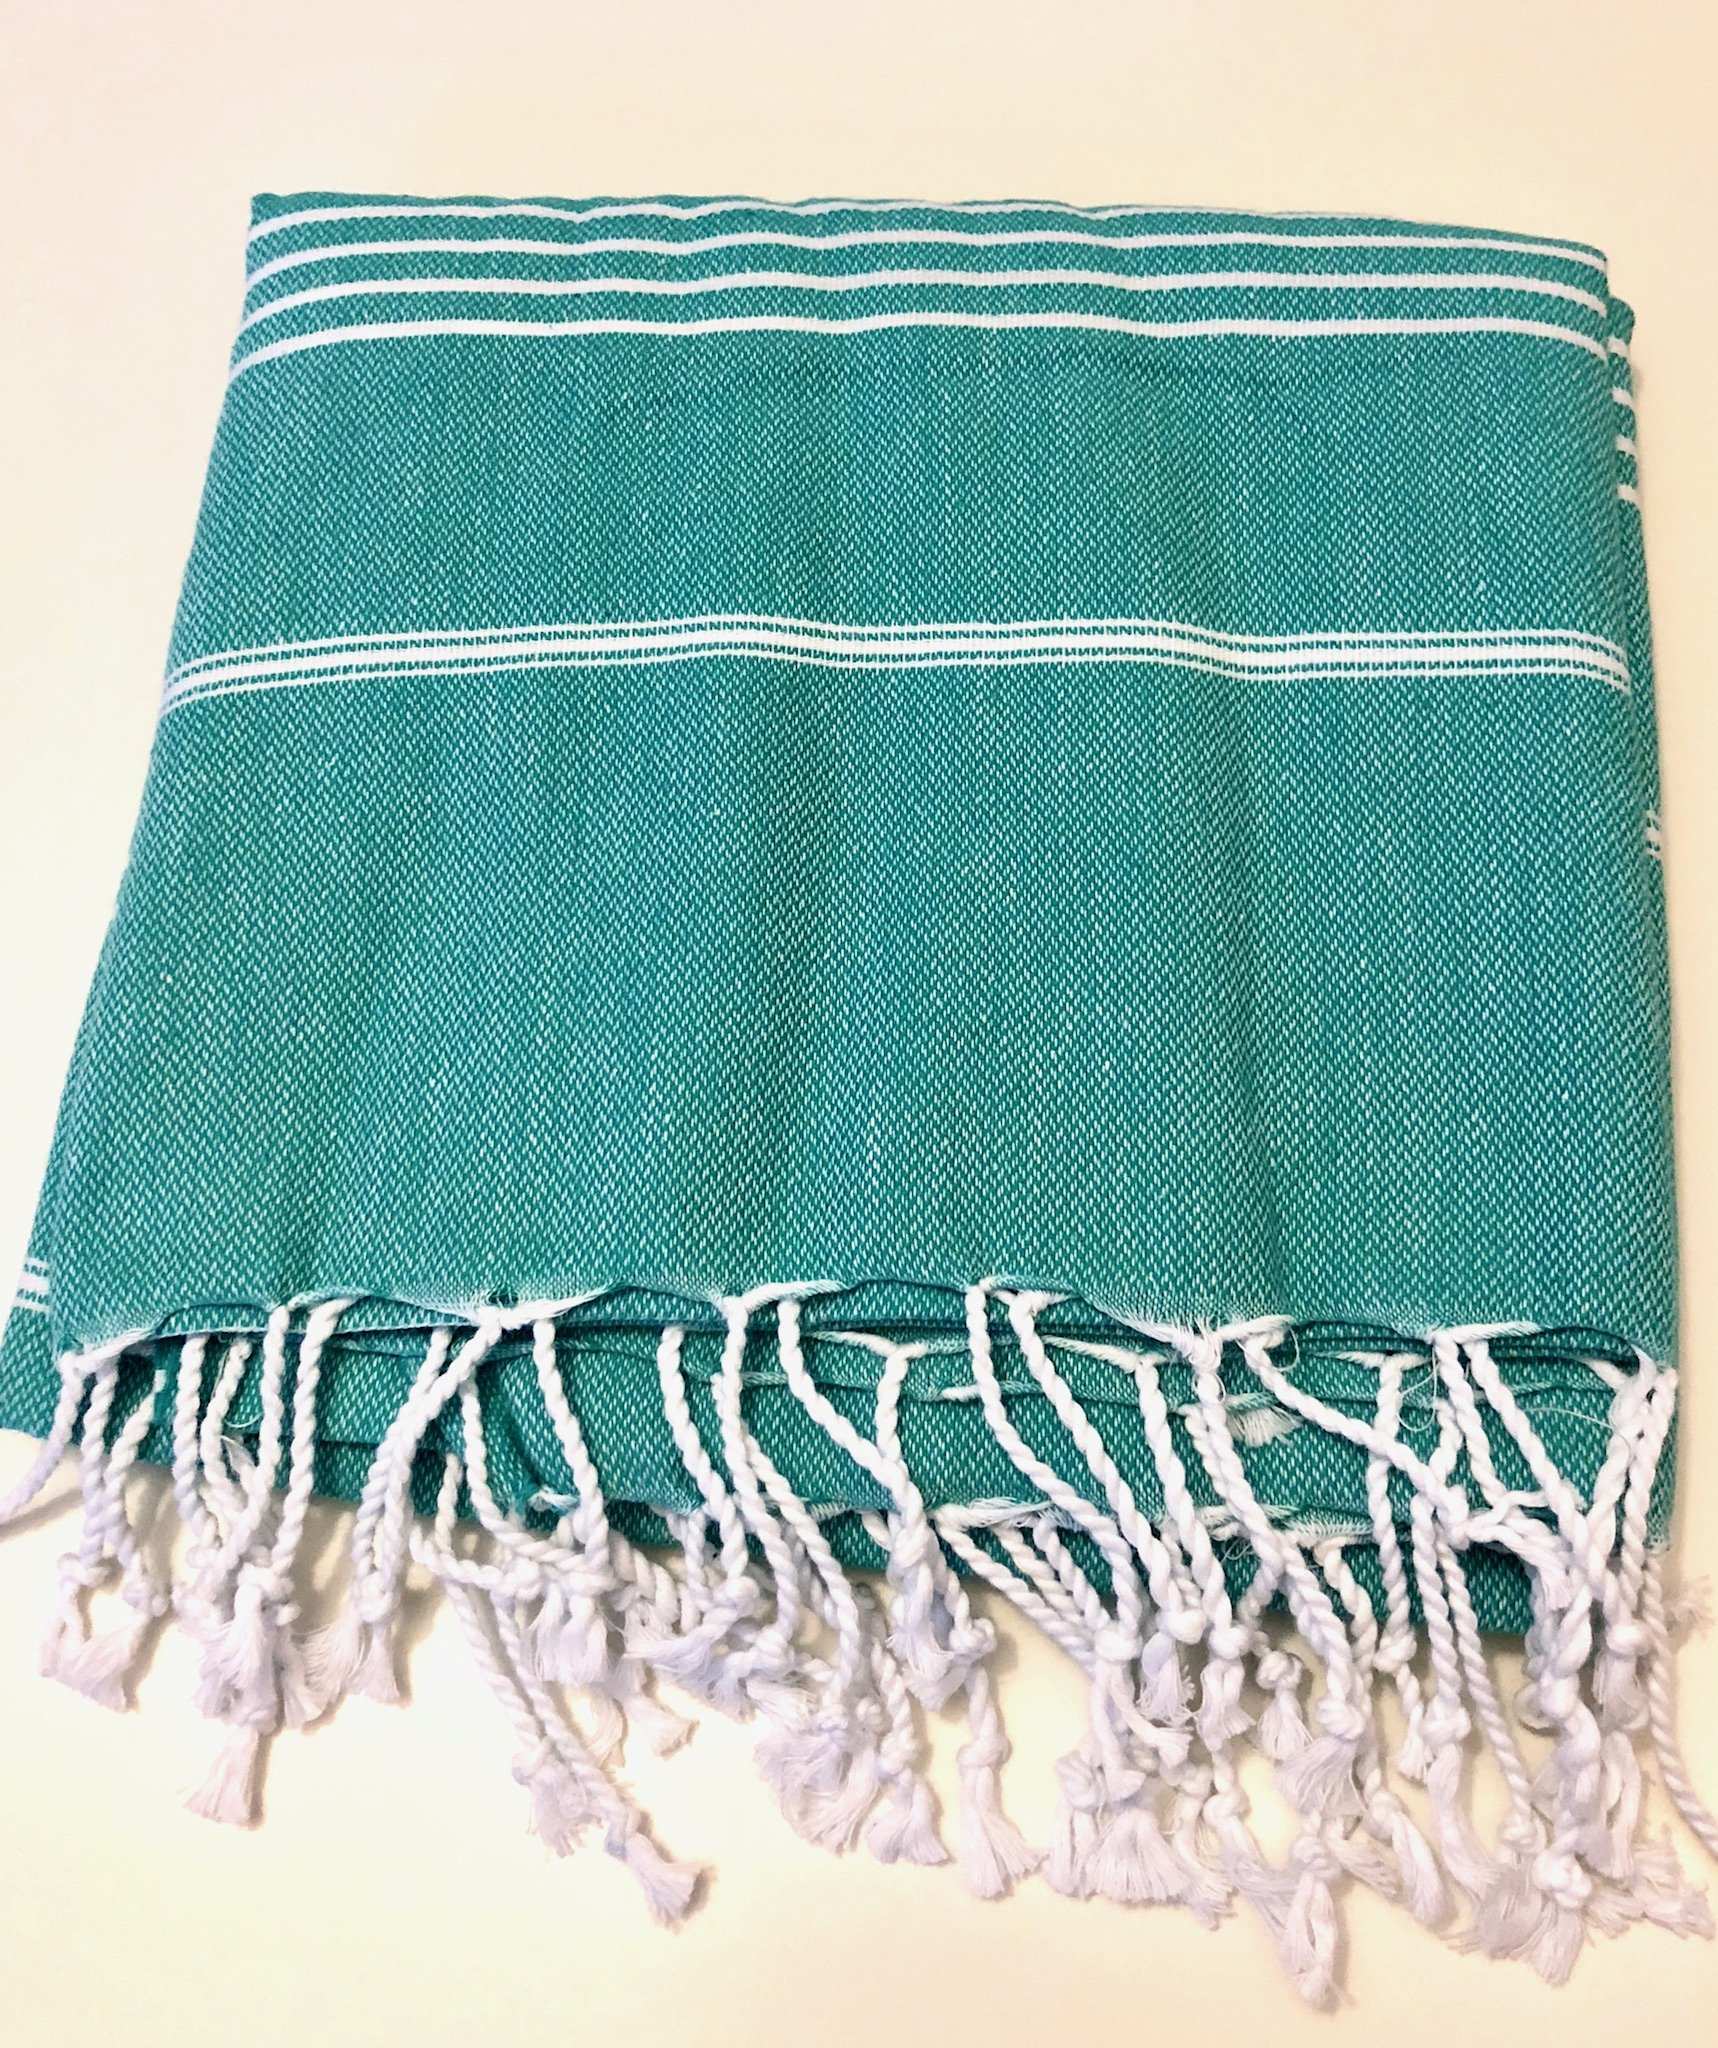 SPARKICK Turkish Peshtemal Towels 100% Cotton, Hand Woven, Light Weight Turkish Towel for Beach, Bath, Sports, spa and Yoga (Turquoise) - 100% Cotton Size 39 X 70 inches (100 X180 cm) Hand Woven - bathroom-linens, bathroom, bath-towels - 91rSC3BUEXL -